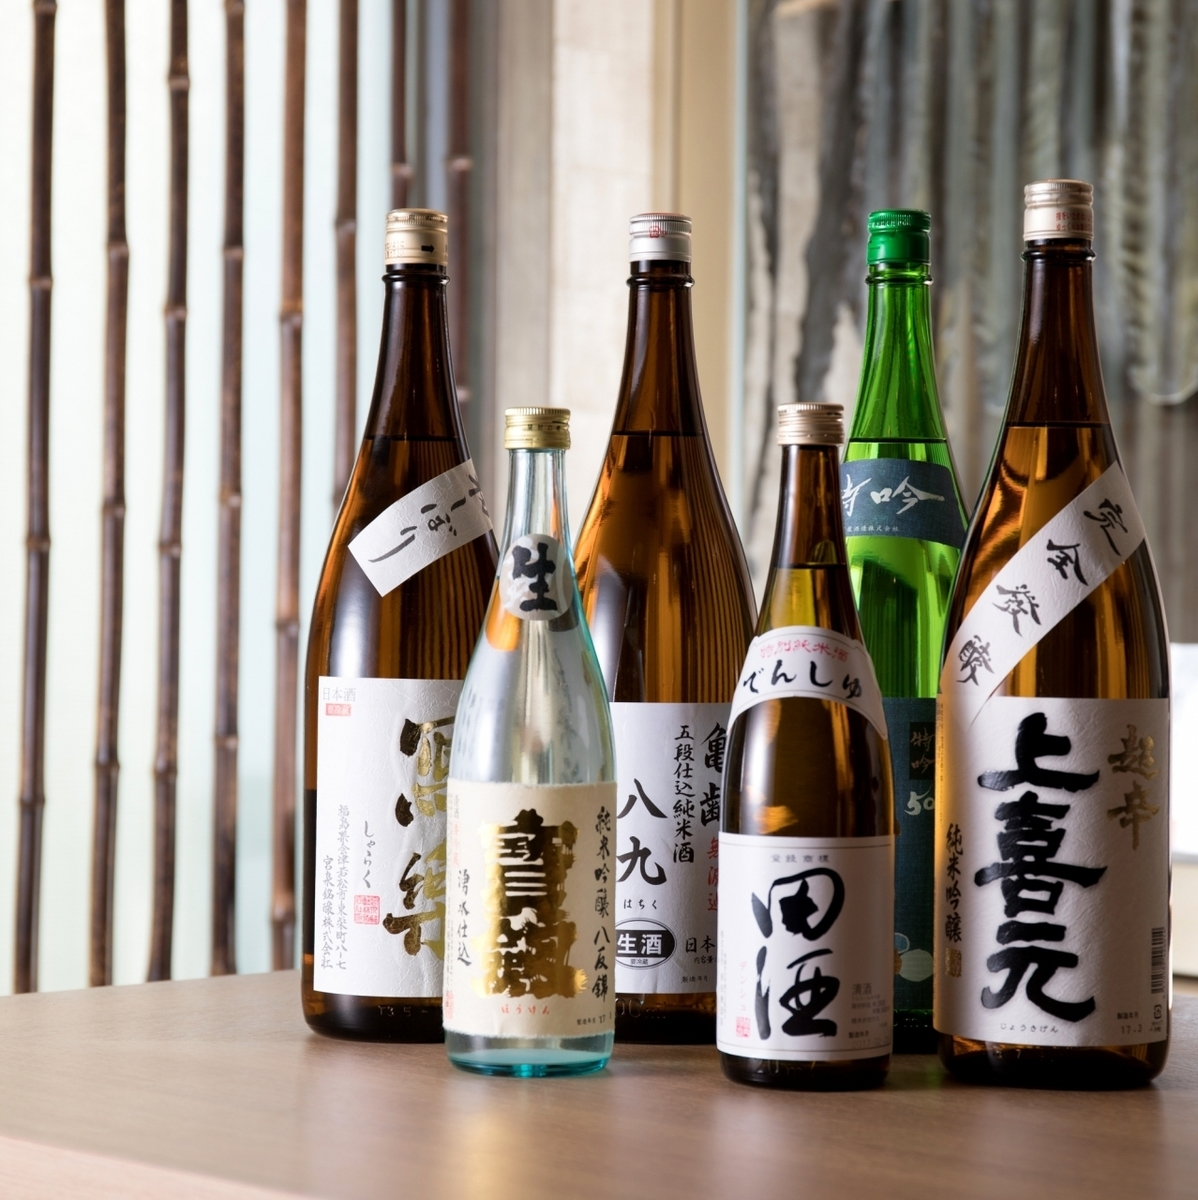 We offer 10 to 12 kinds of local sake selected carefully.